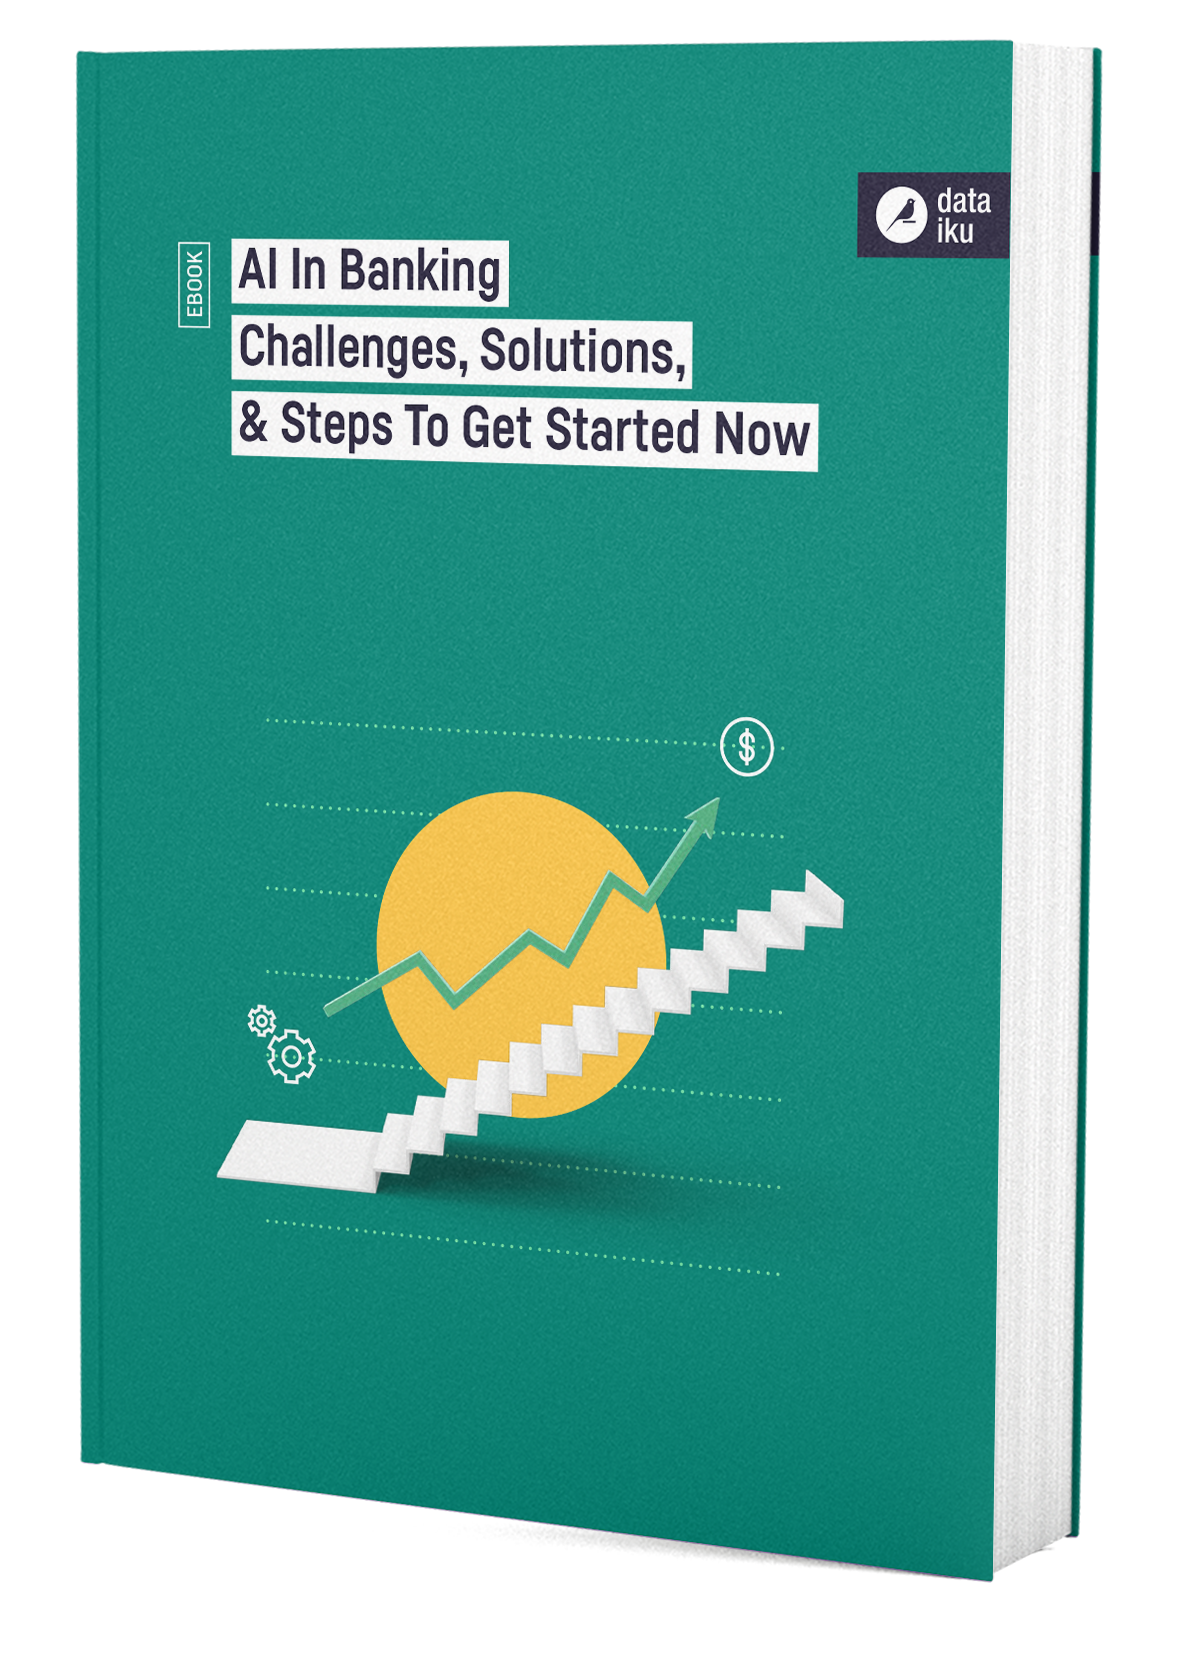 DKU_AI_IN_BANKING_CHALLENGES_SOLUTIONS_&_STEPS_TO_GET_STARTED_NOW